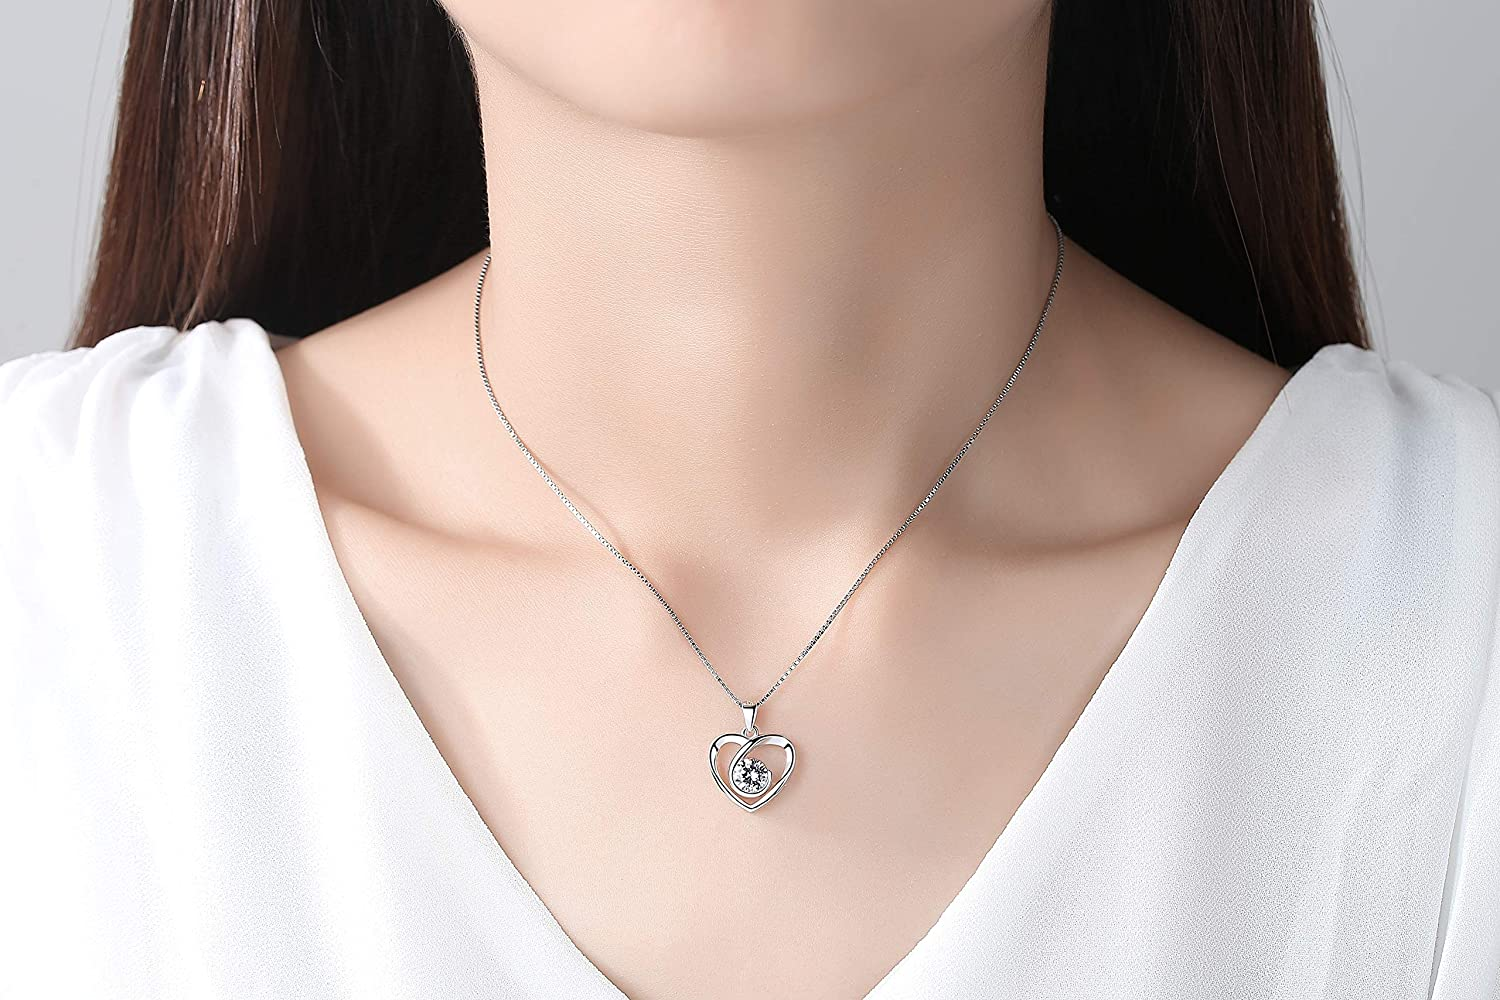 NOOYAH 925 Sterling Silver Love Heart Pendant Necklace Gift for Women Girls Mom,Crystals Cubic Zirconia Necklaces Anniversary Birthday Gifts for Her